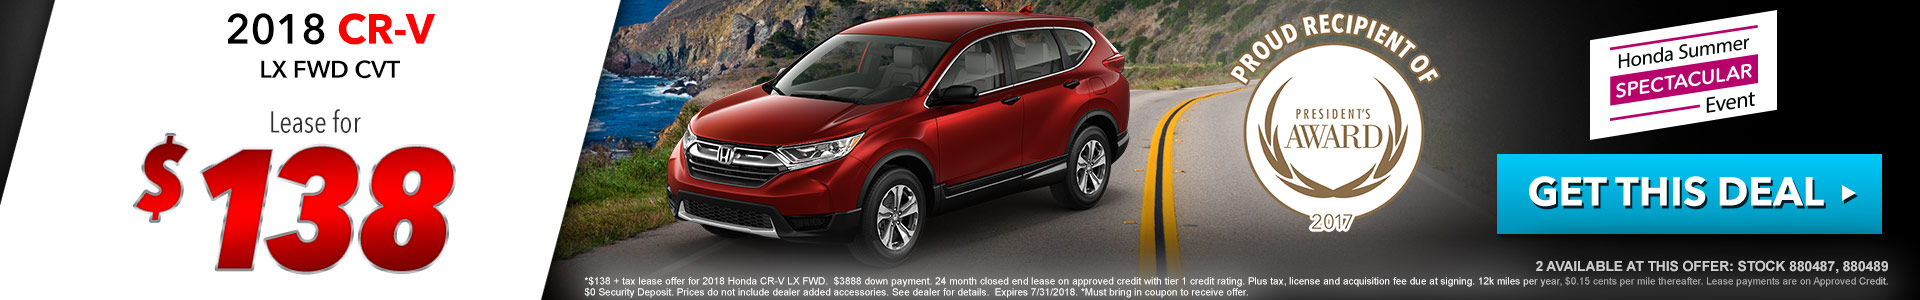 Honda CR-V $138 Lease